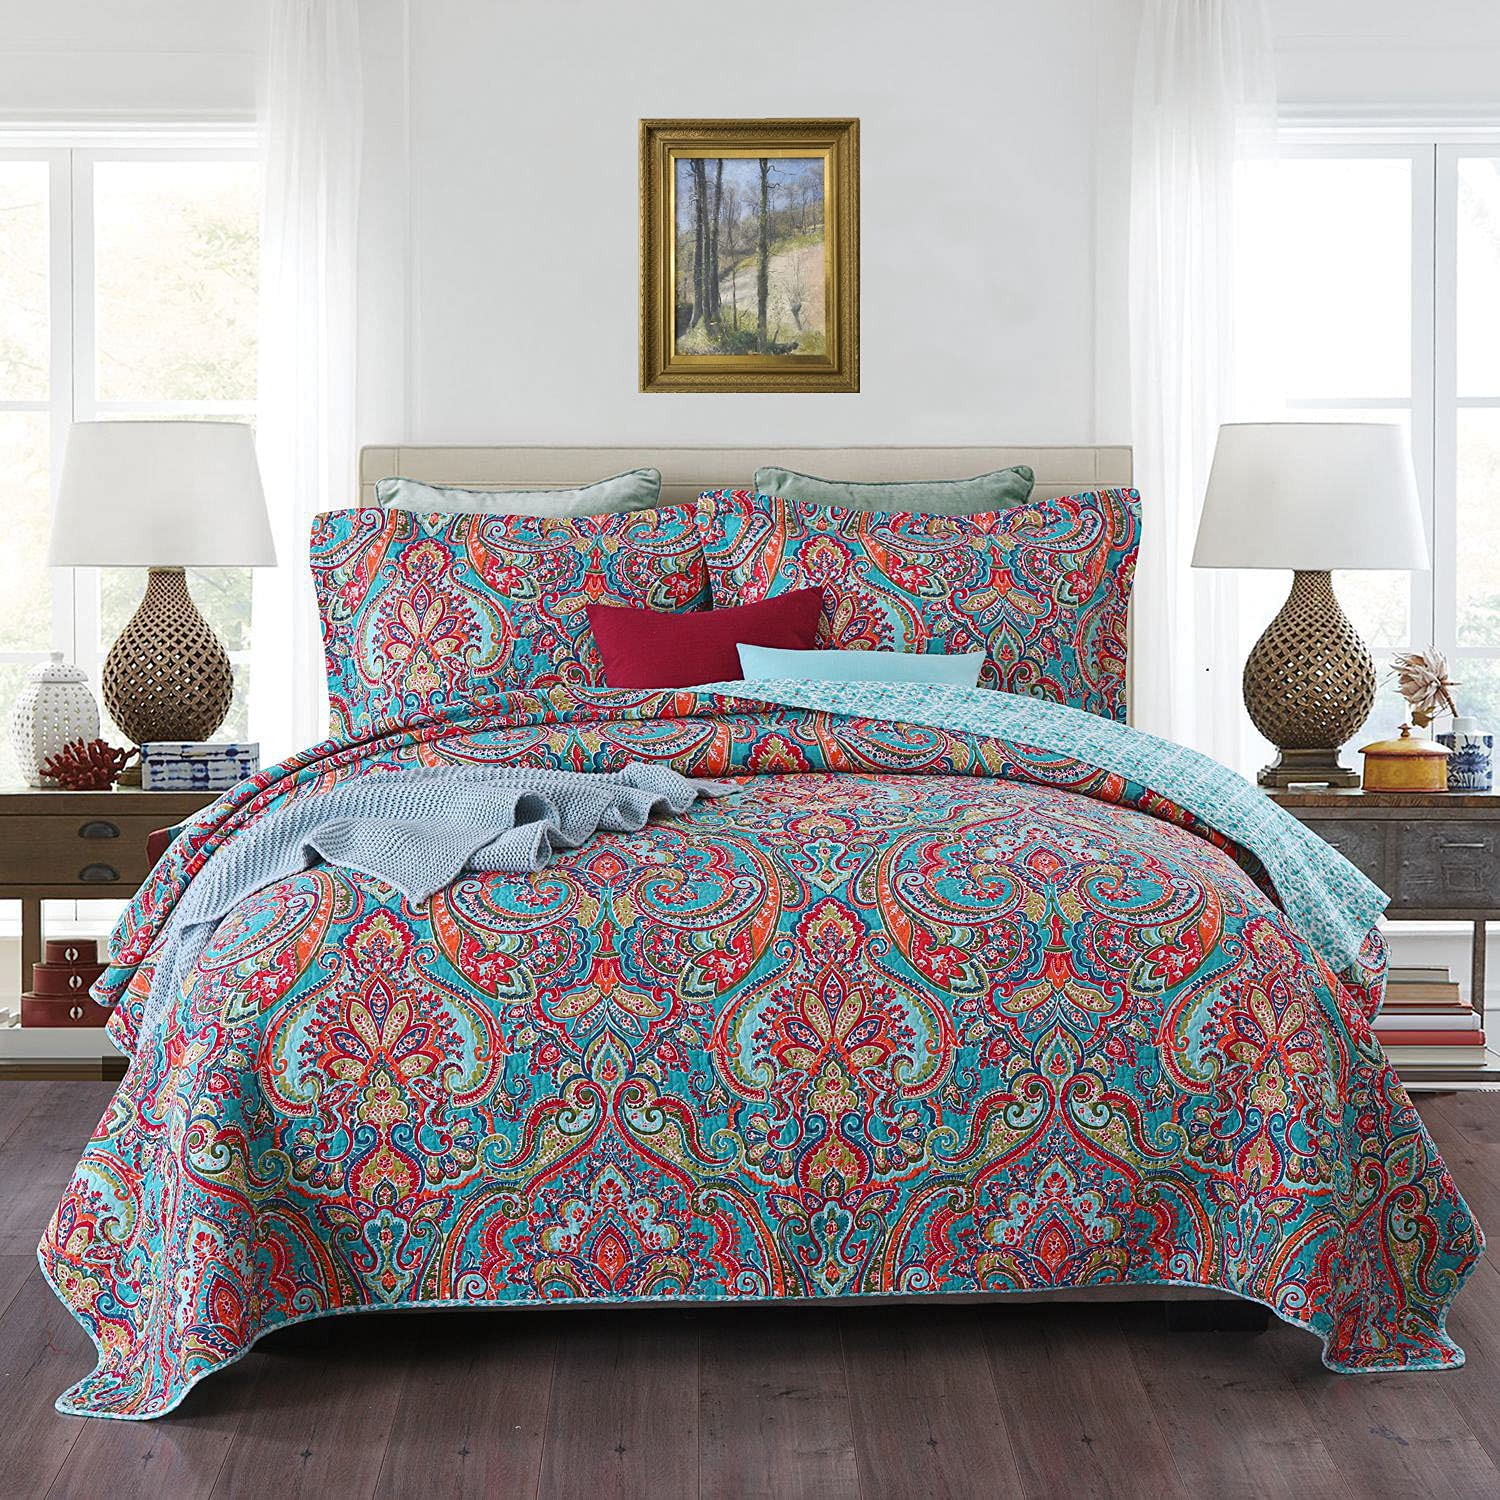 Suprehomeus Cotton Bedspread Detroit Mall Quilt Miami Mall Sets Gorgeous Floral Pattern